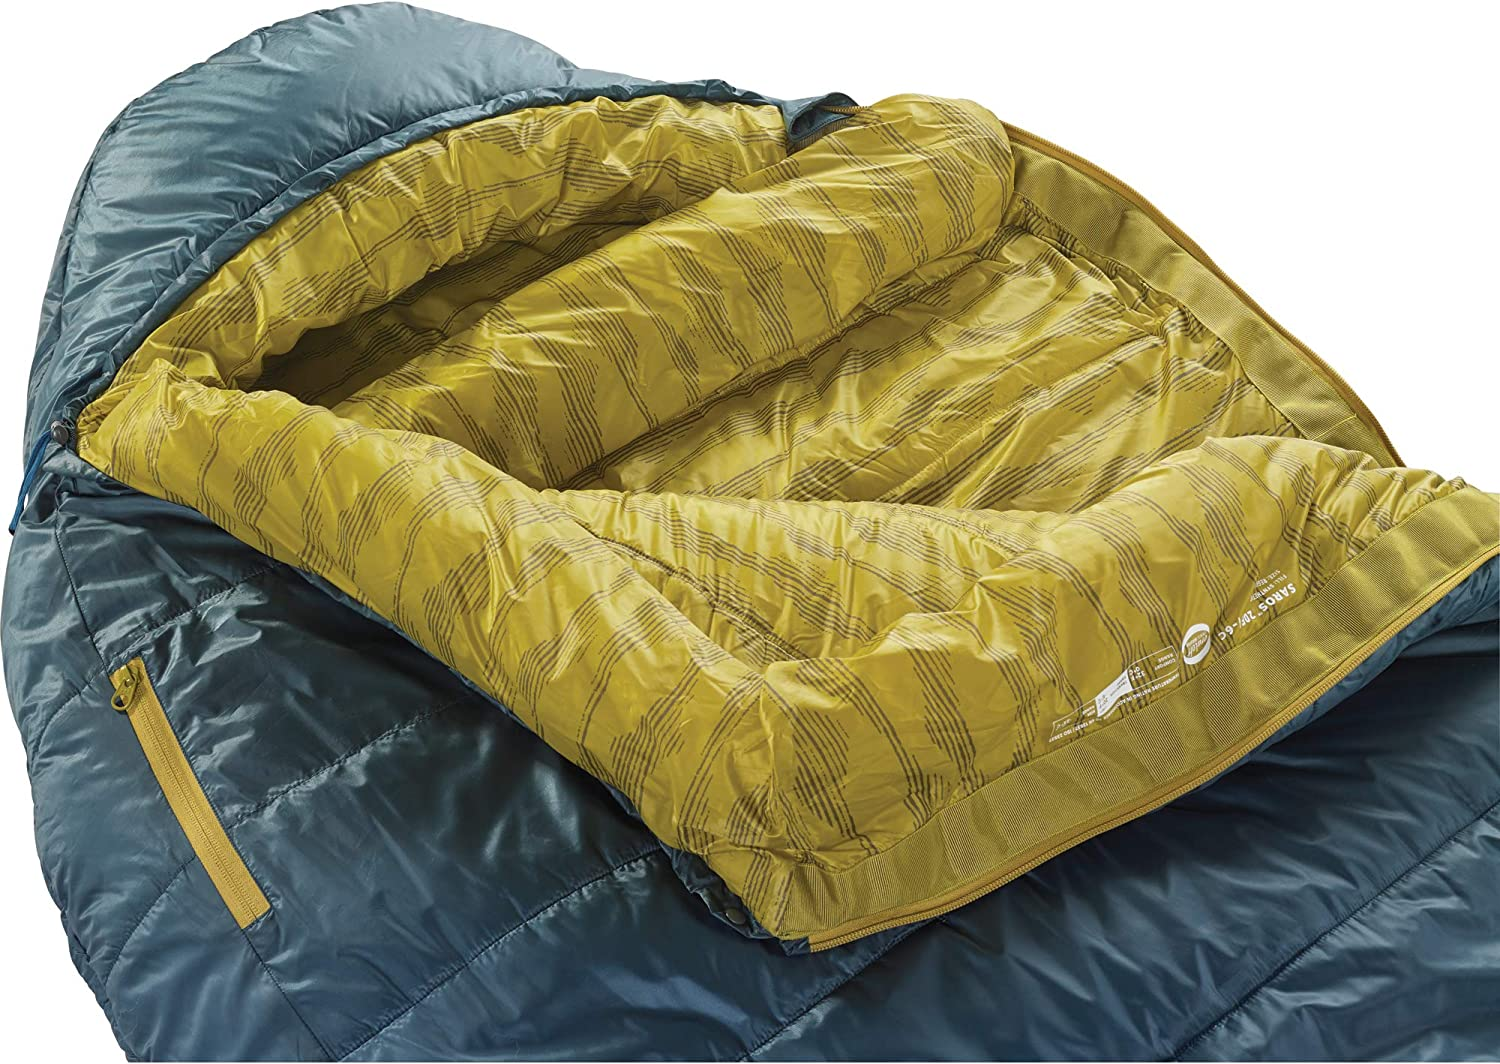 Therm-a-Rest Saros 20F//-6/°C Sac de couchage synth/étique Taille normale